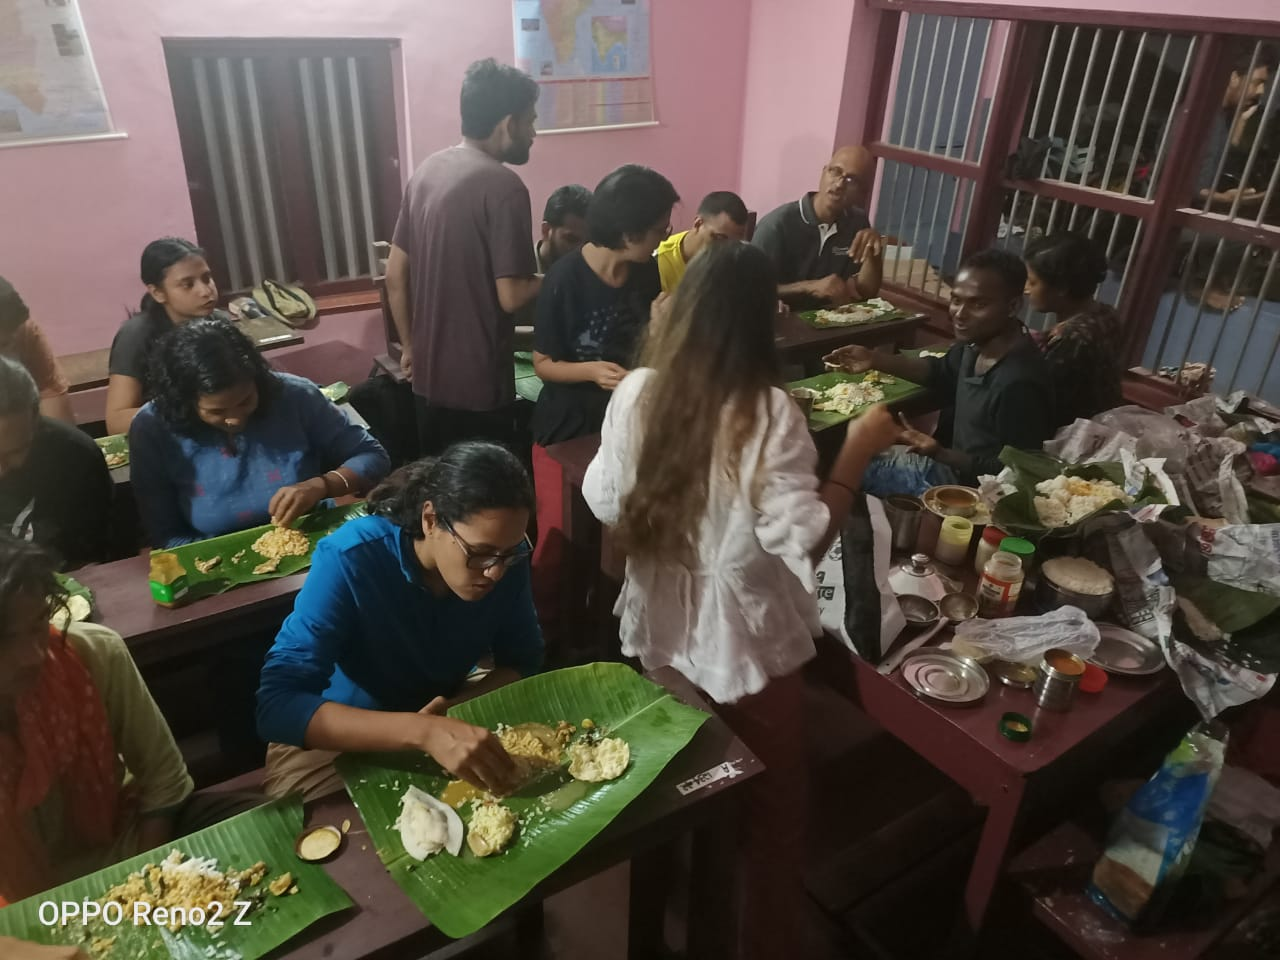 temple food, group dinner, happy meal, traditional food, food bloggers, travelers, travel bloggers, love for food, love for soil, love for indian culture, kerala food, kerala lifestyle